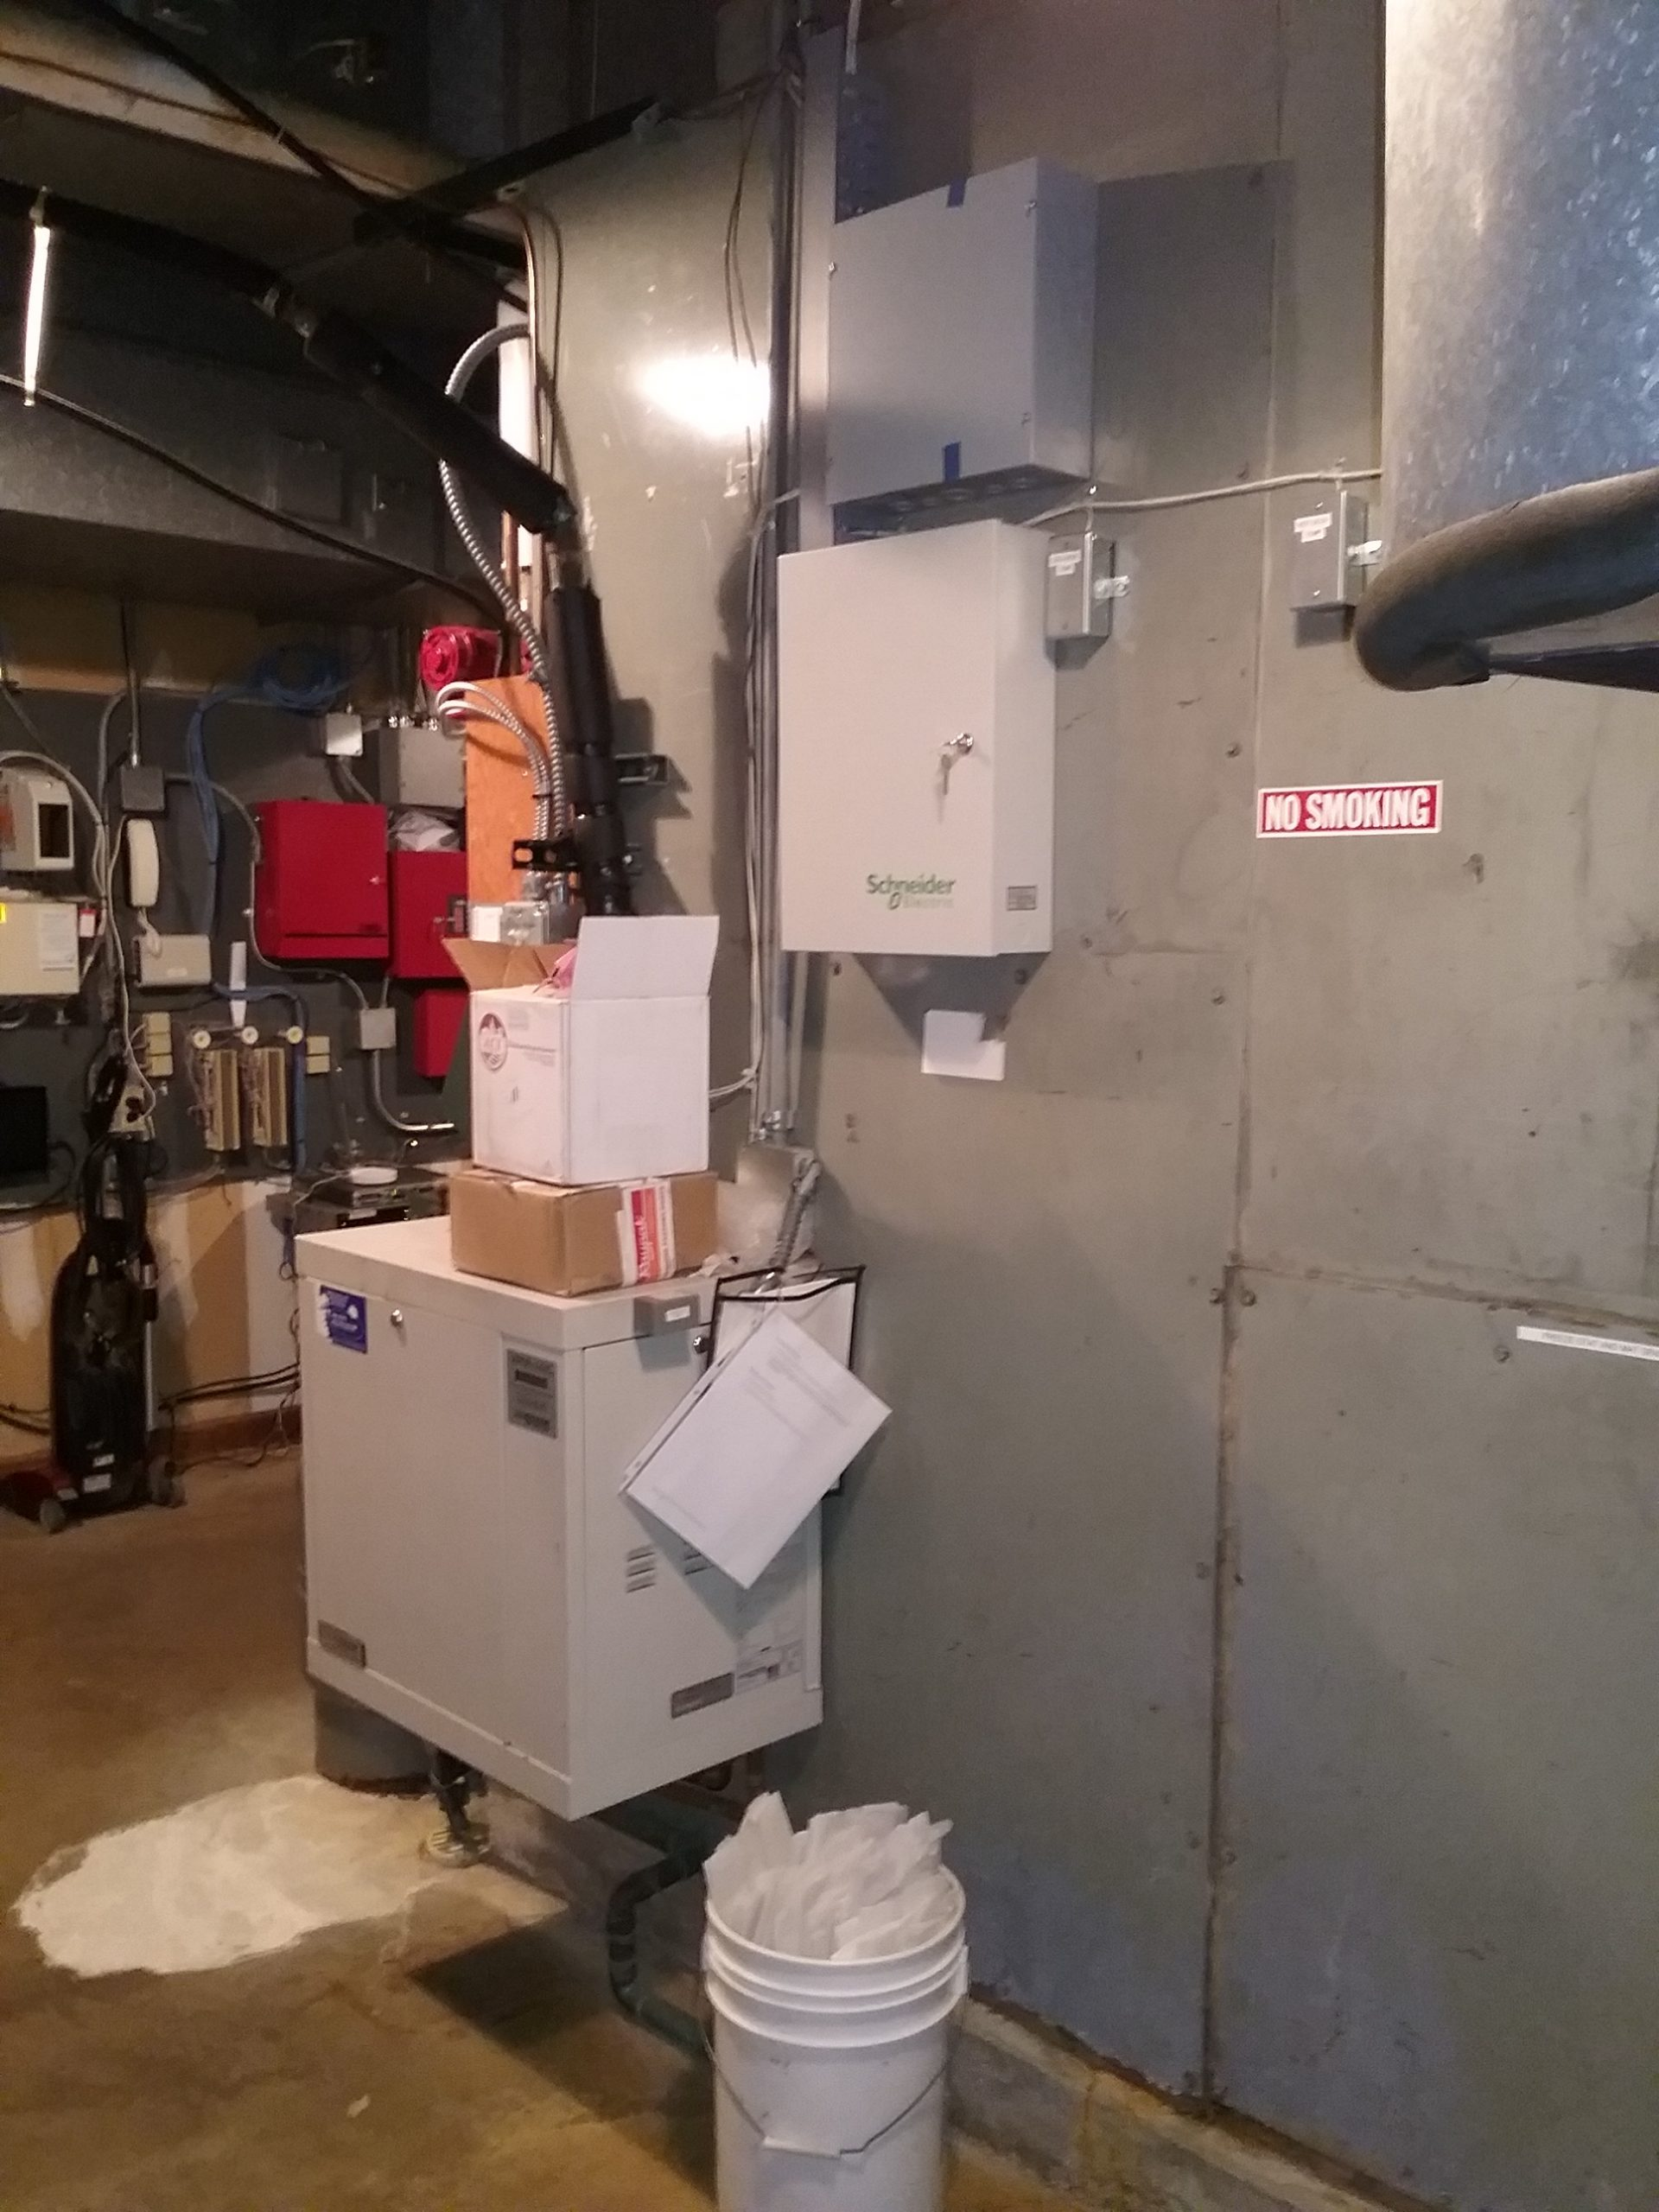 Air handler, humidifier, and control panel, Weyerhaeuser Museum's HVAC system, October 2020.